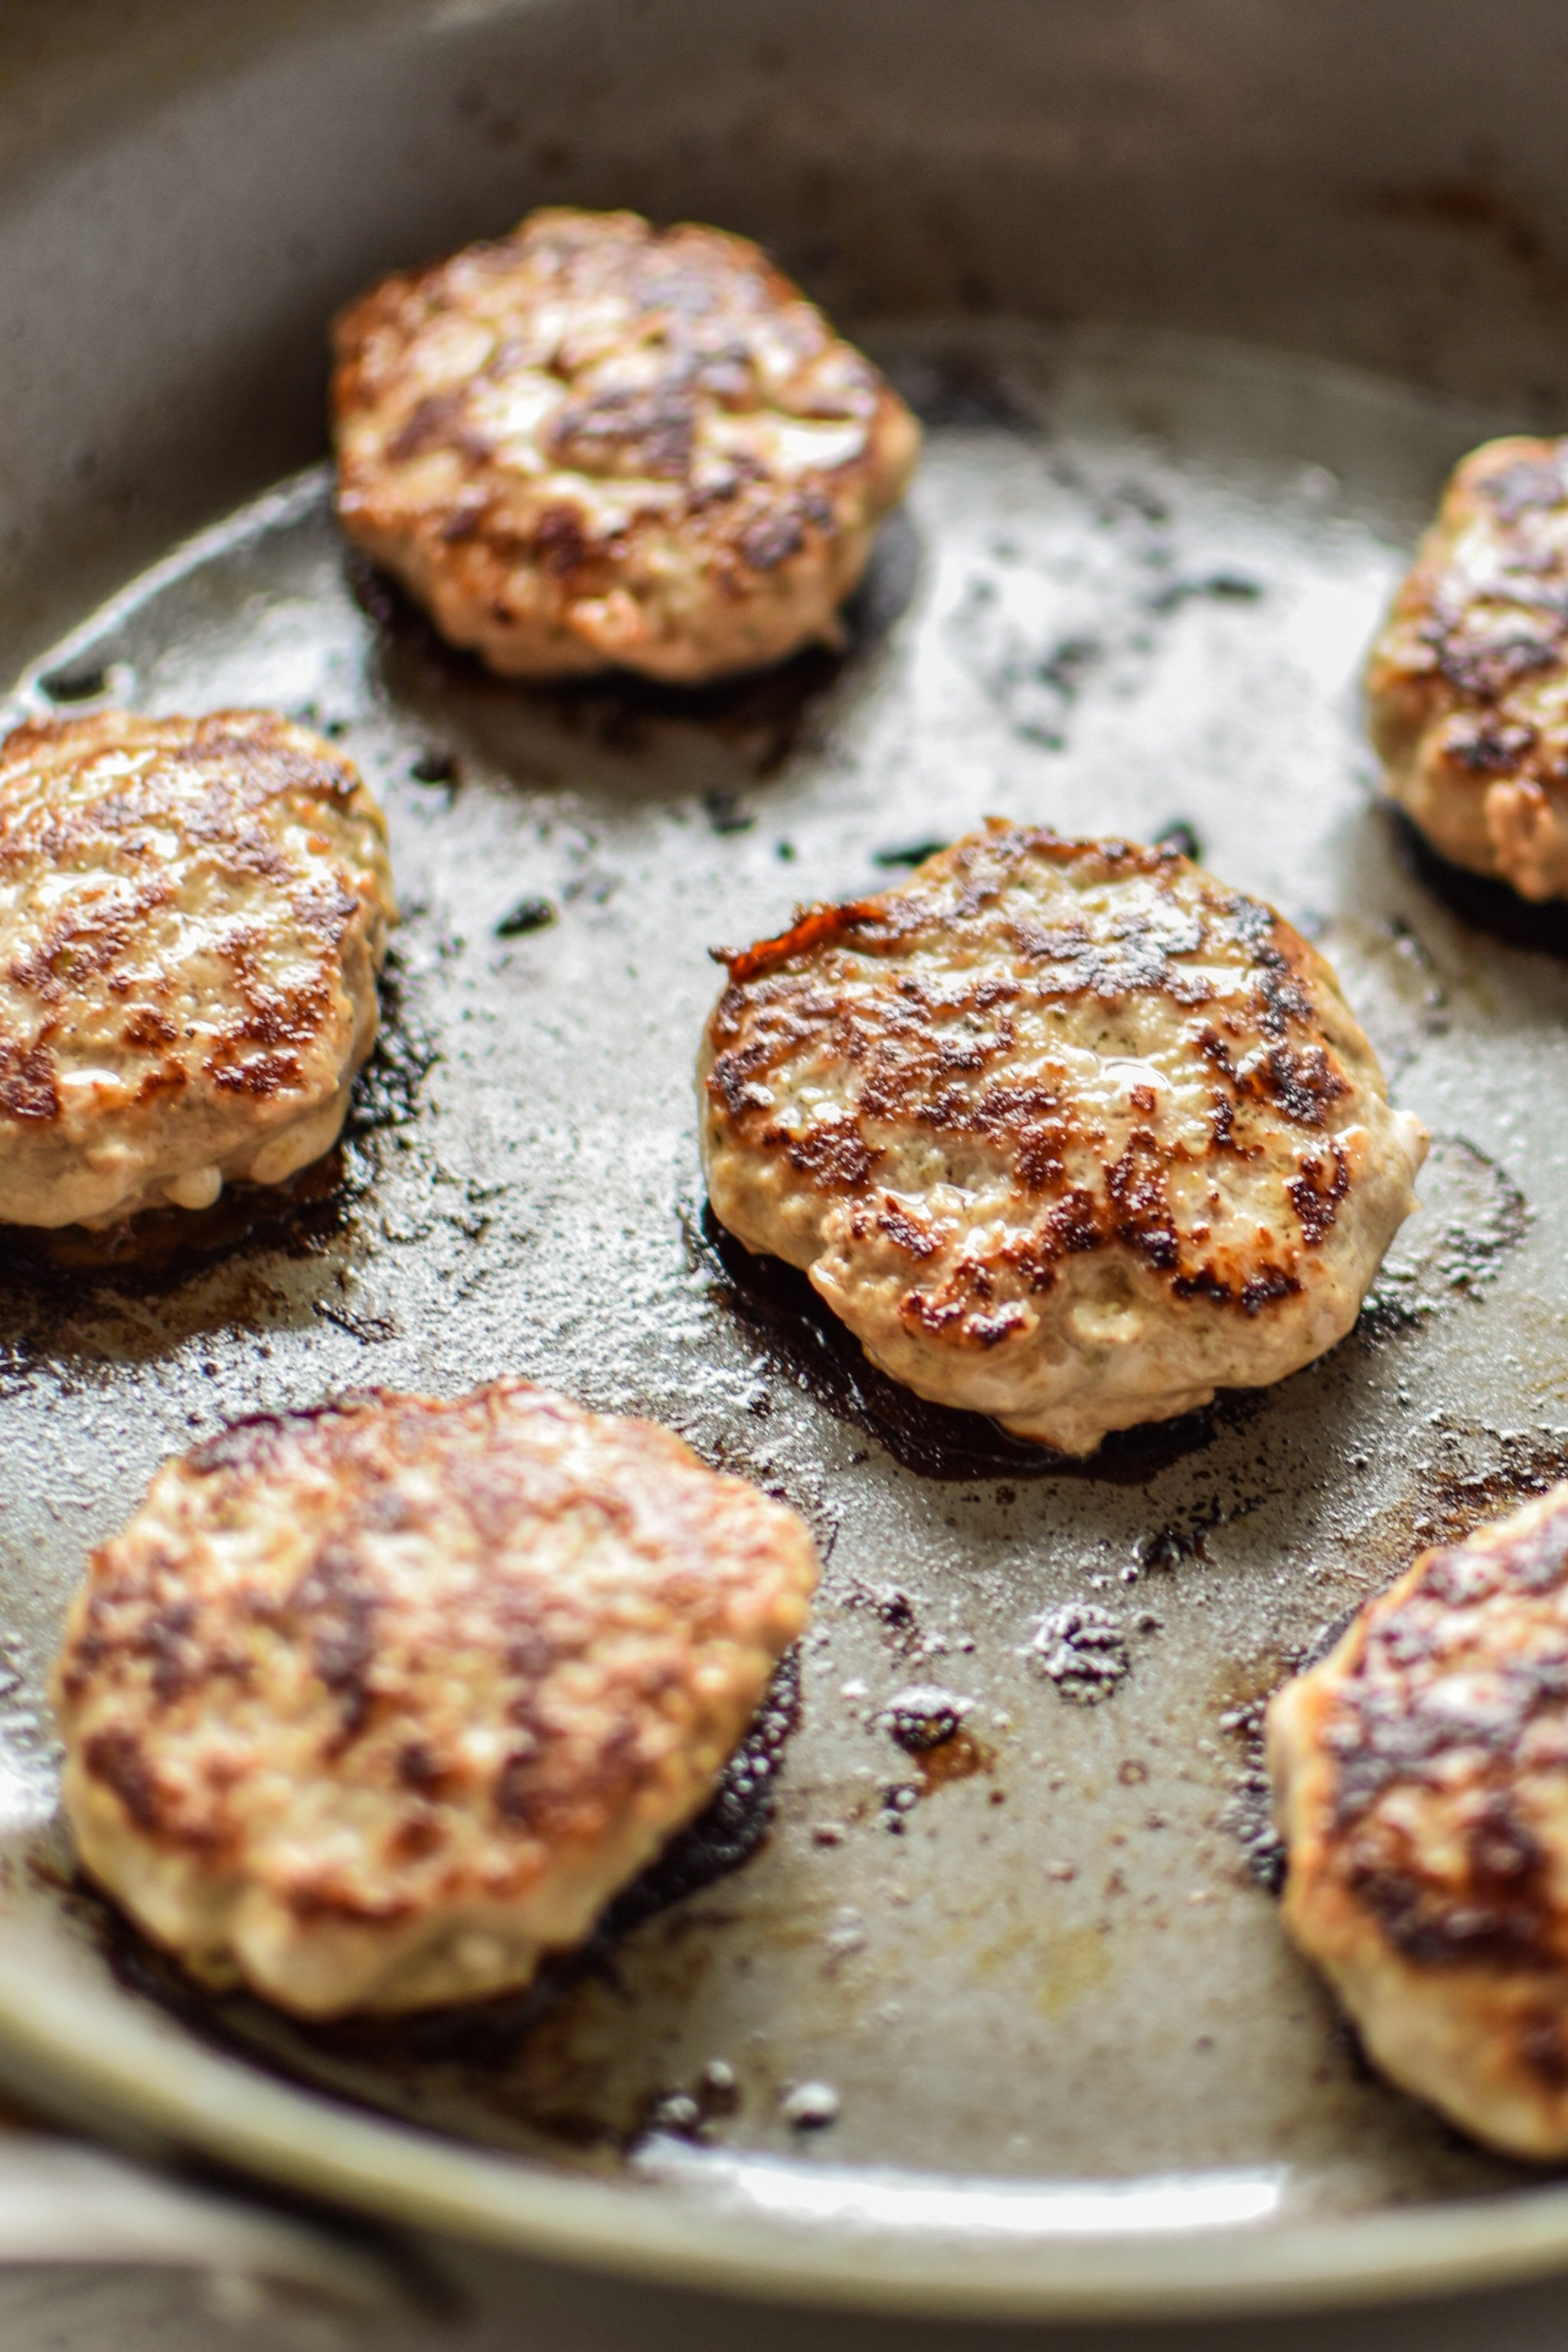 Ground turkey breakfast sausage patties frying in the pan.